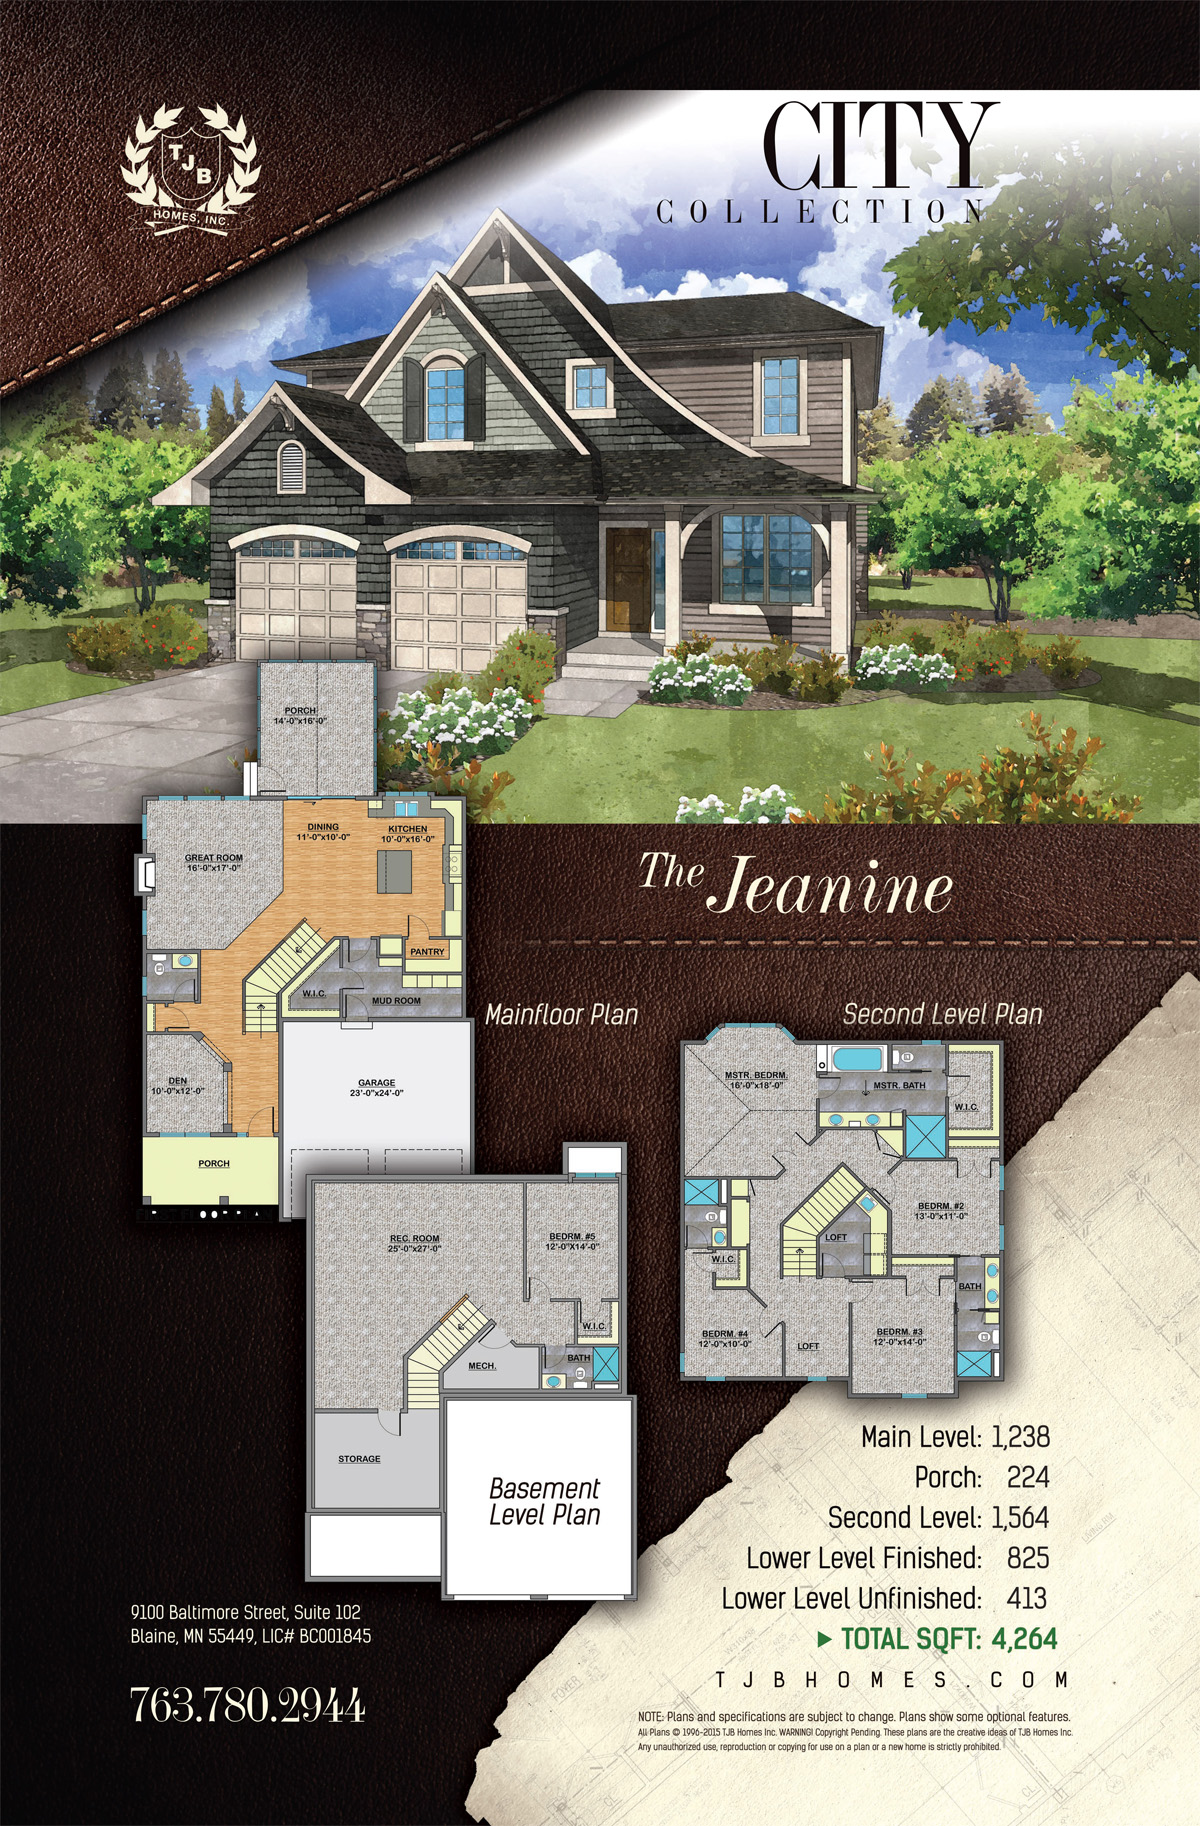 City Collection Home Plans - The Jeanine